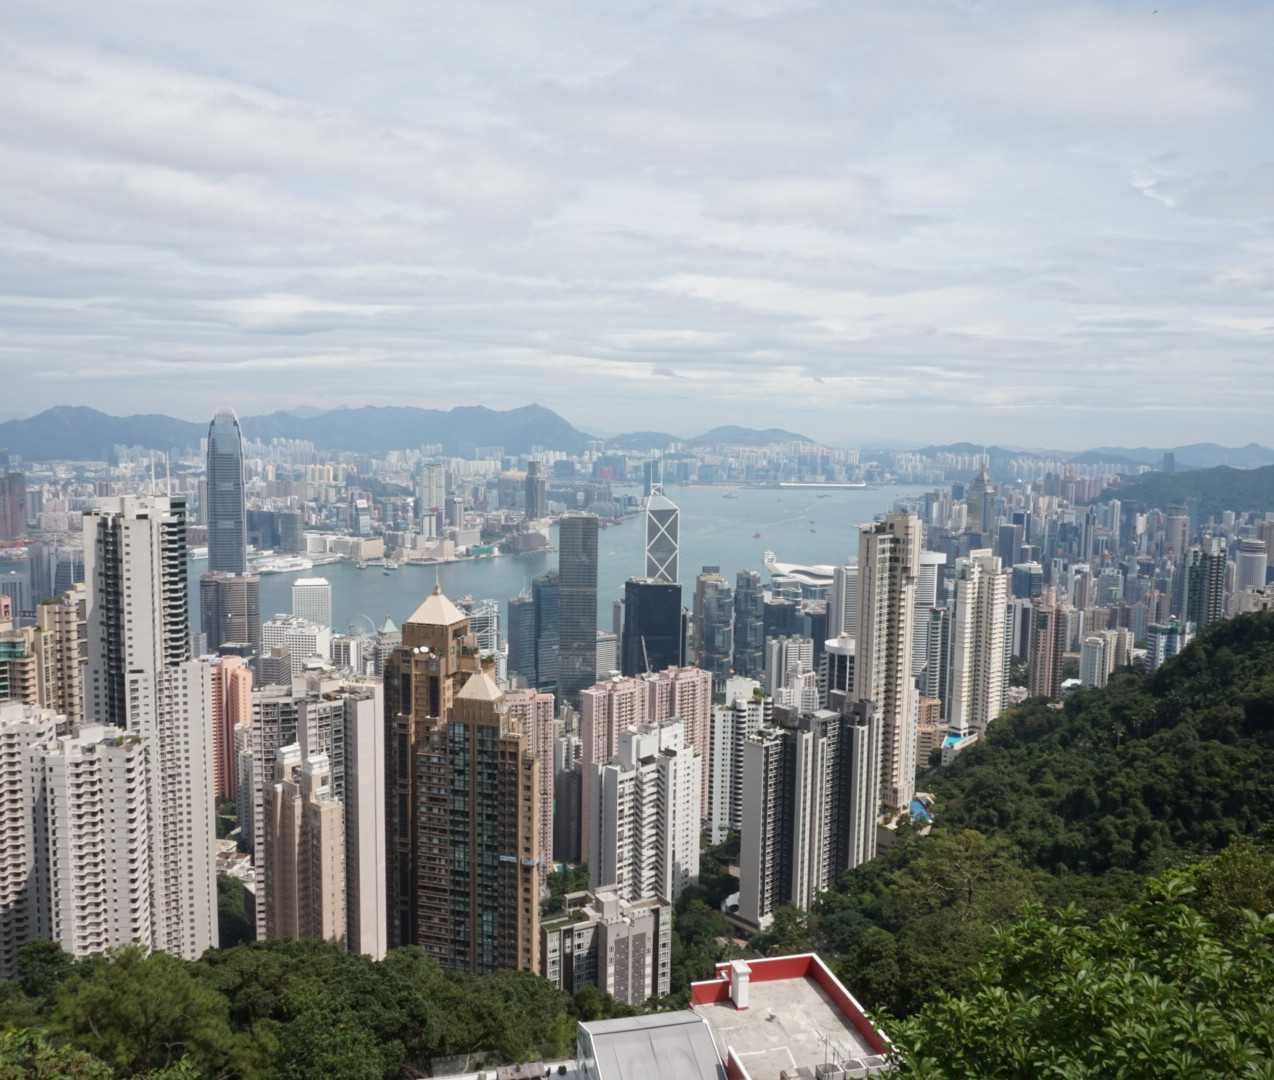 View from Victoria Peak overlooking Hong Kong, Causeway Bay, Kowloon